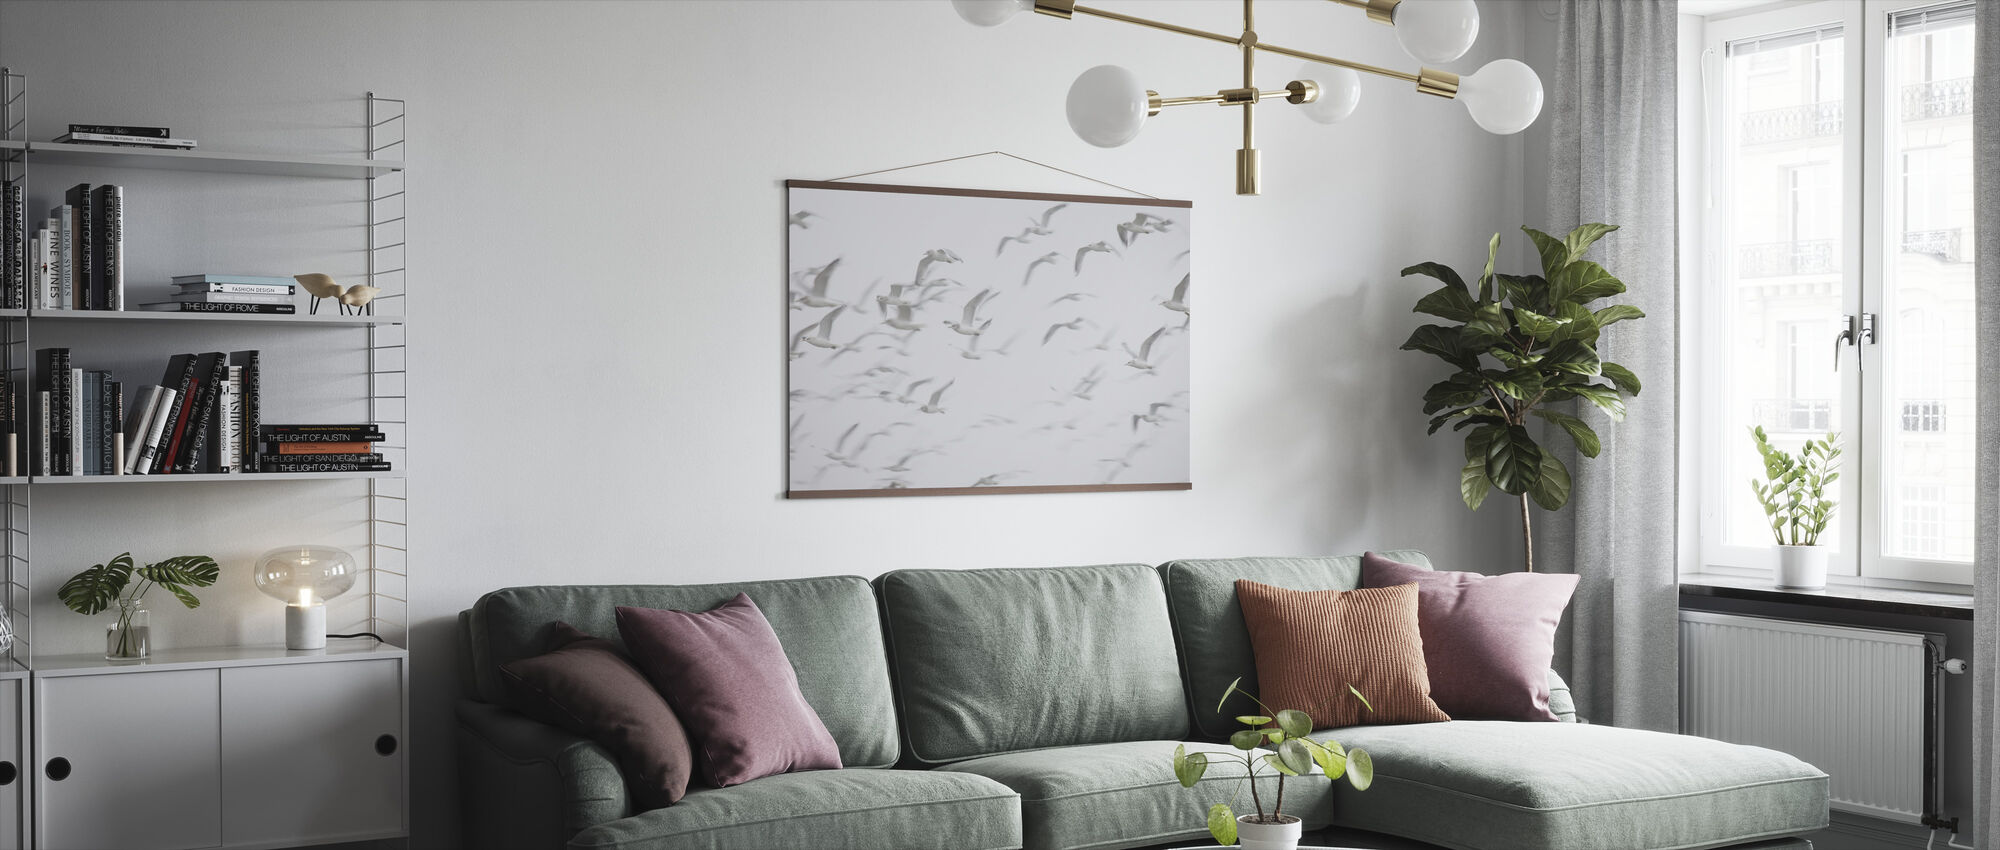 Flock of Birds - Poster - Living Room